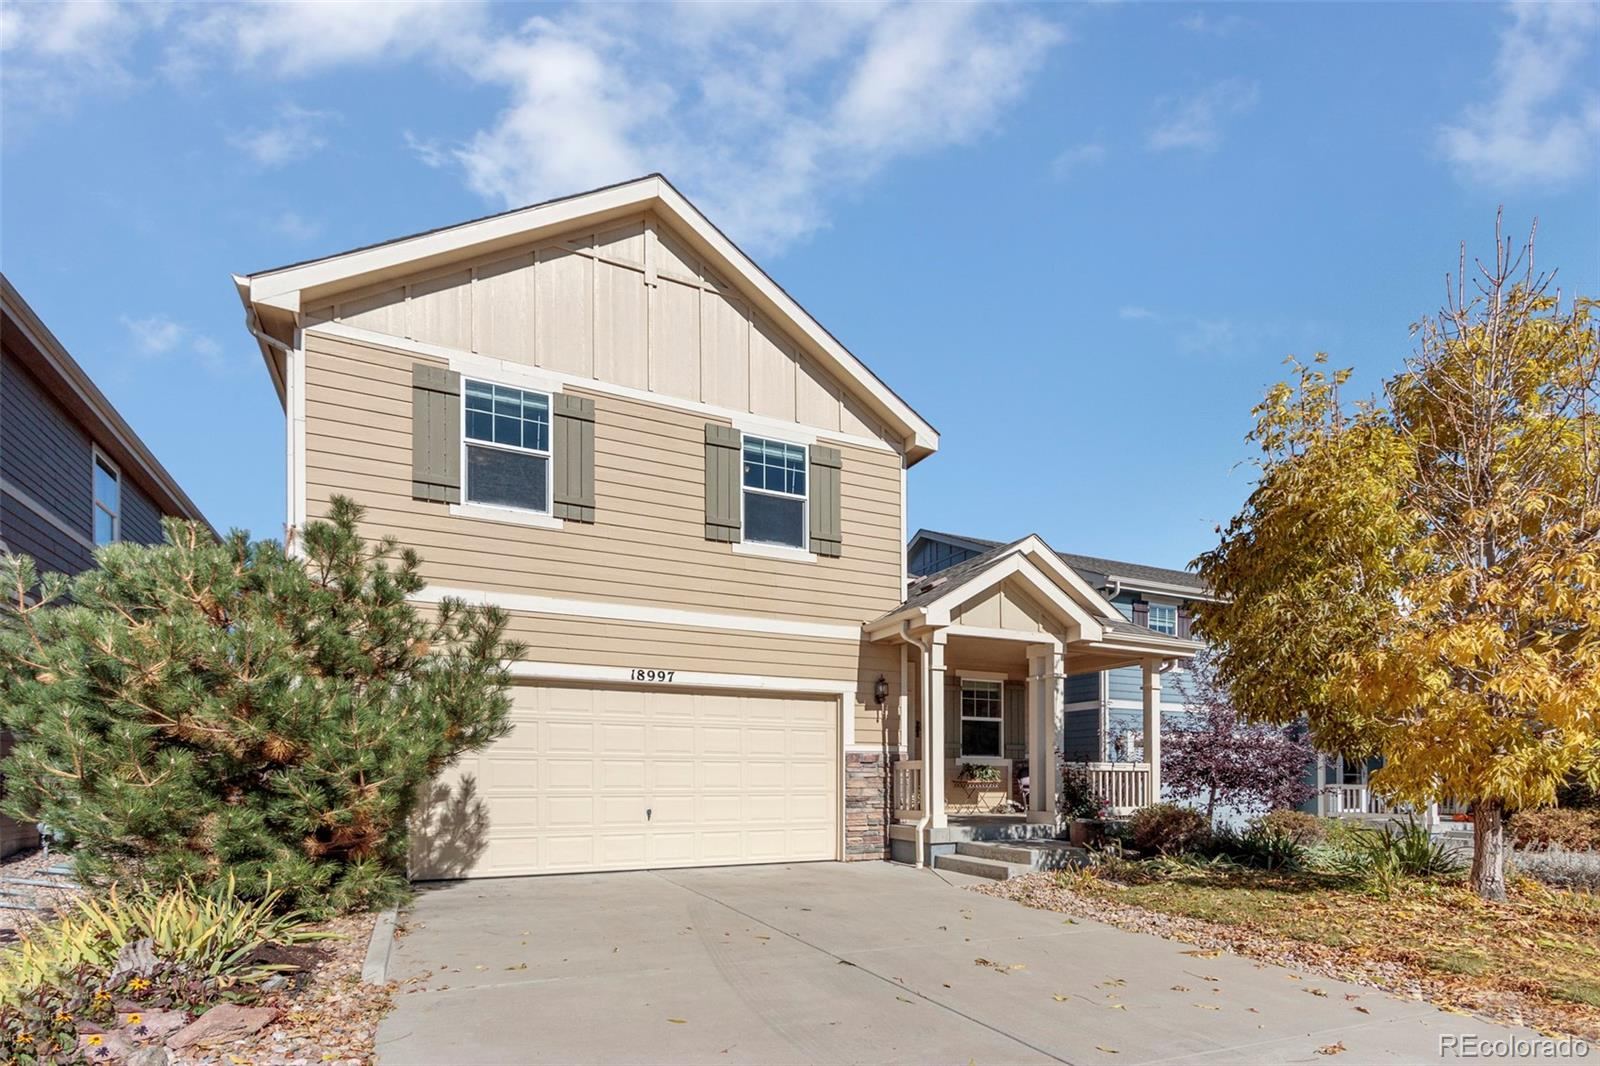 18997 W 57th Drive, Golden, CO 80403